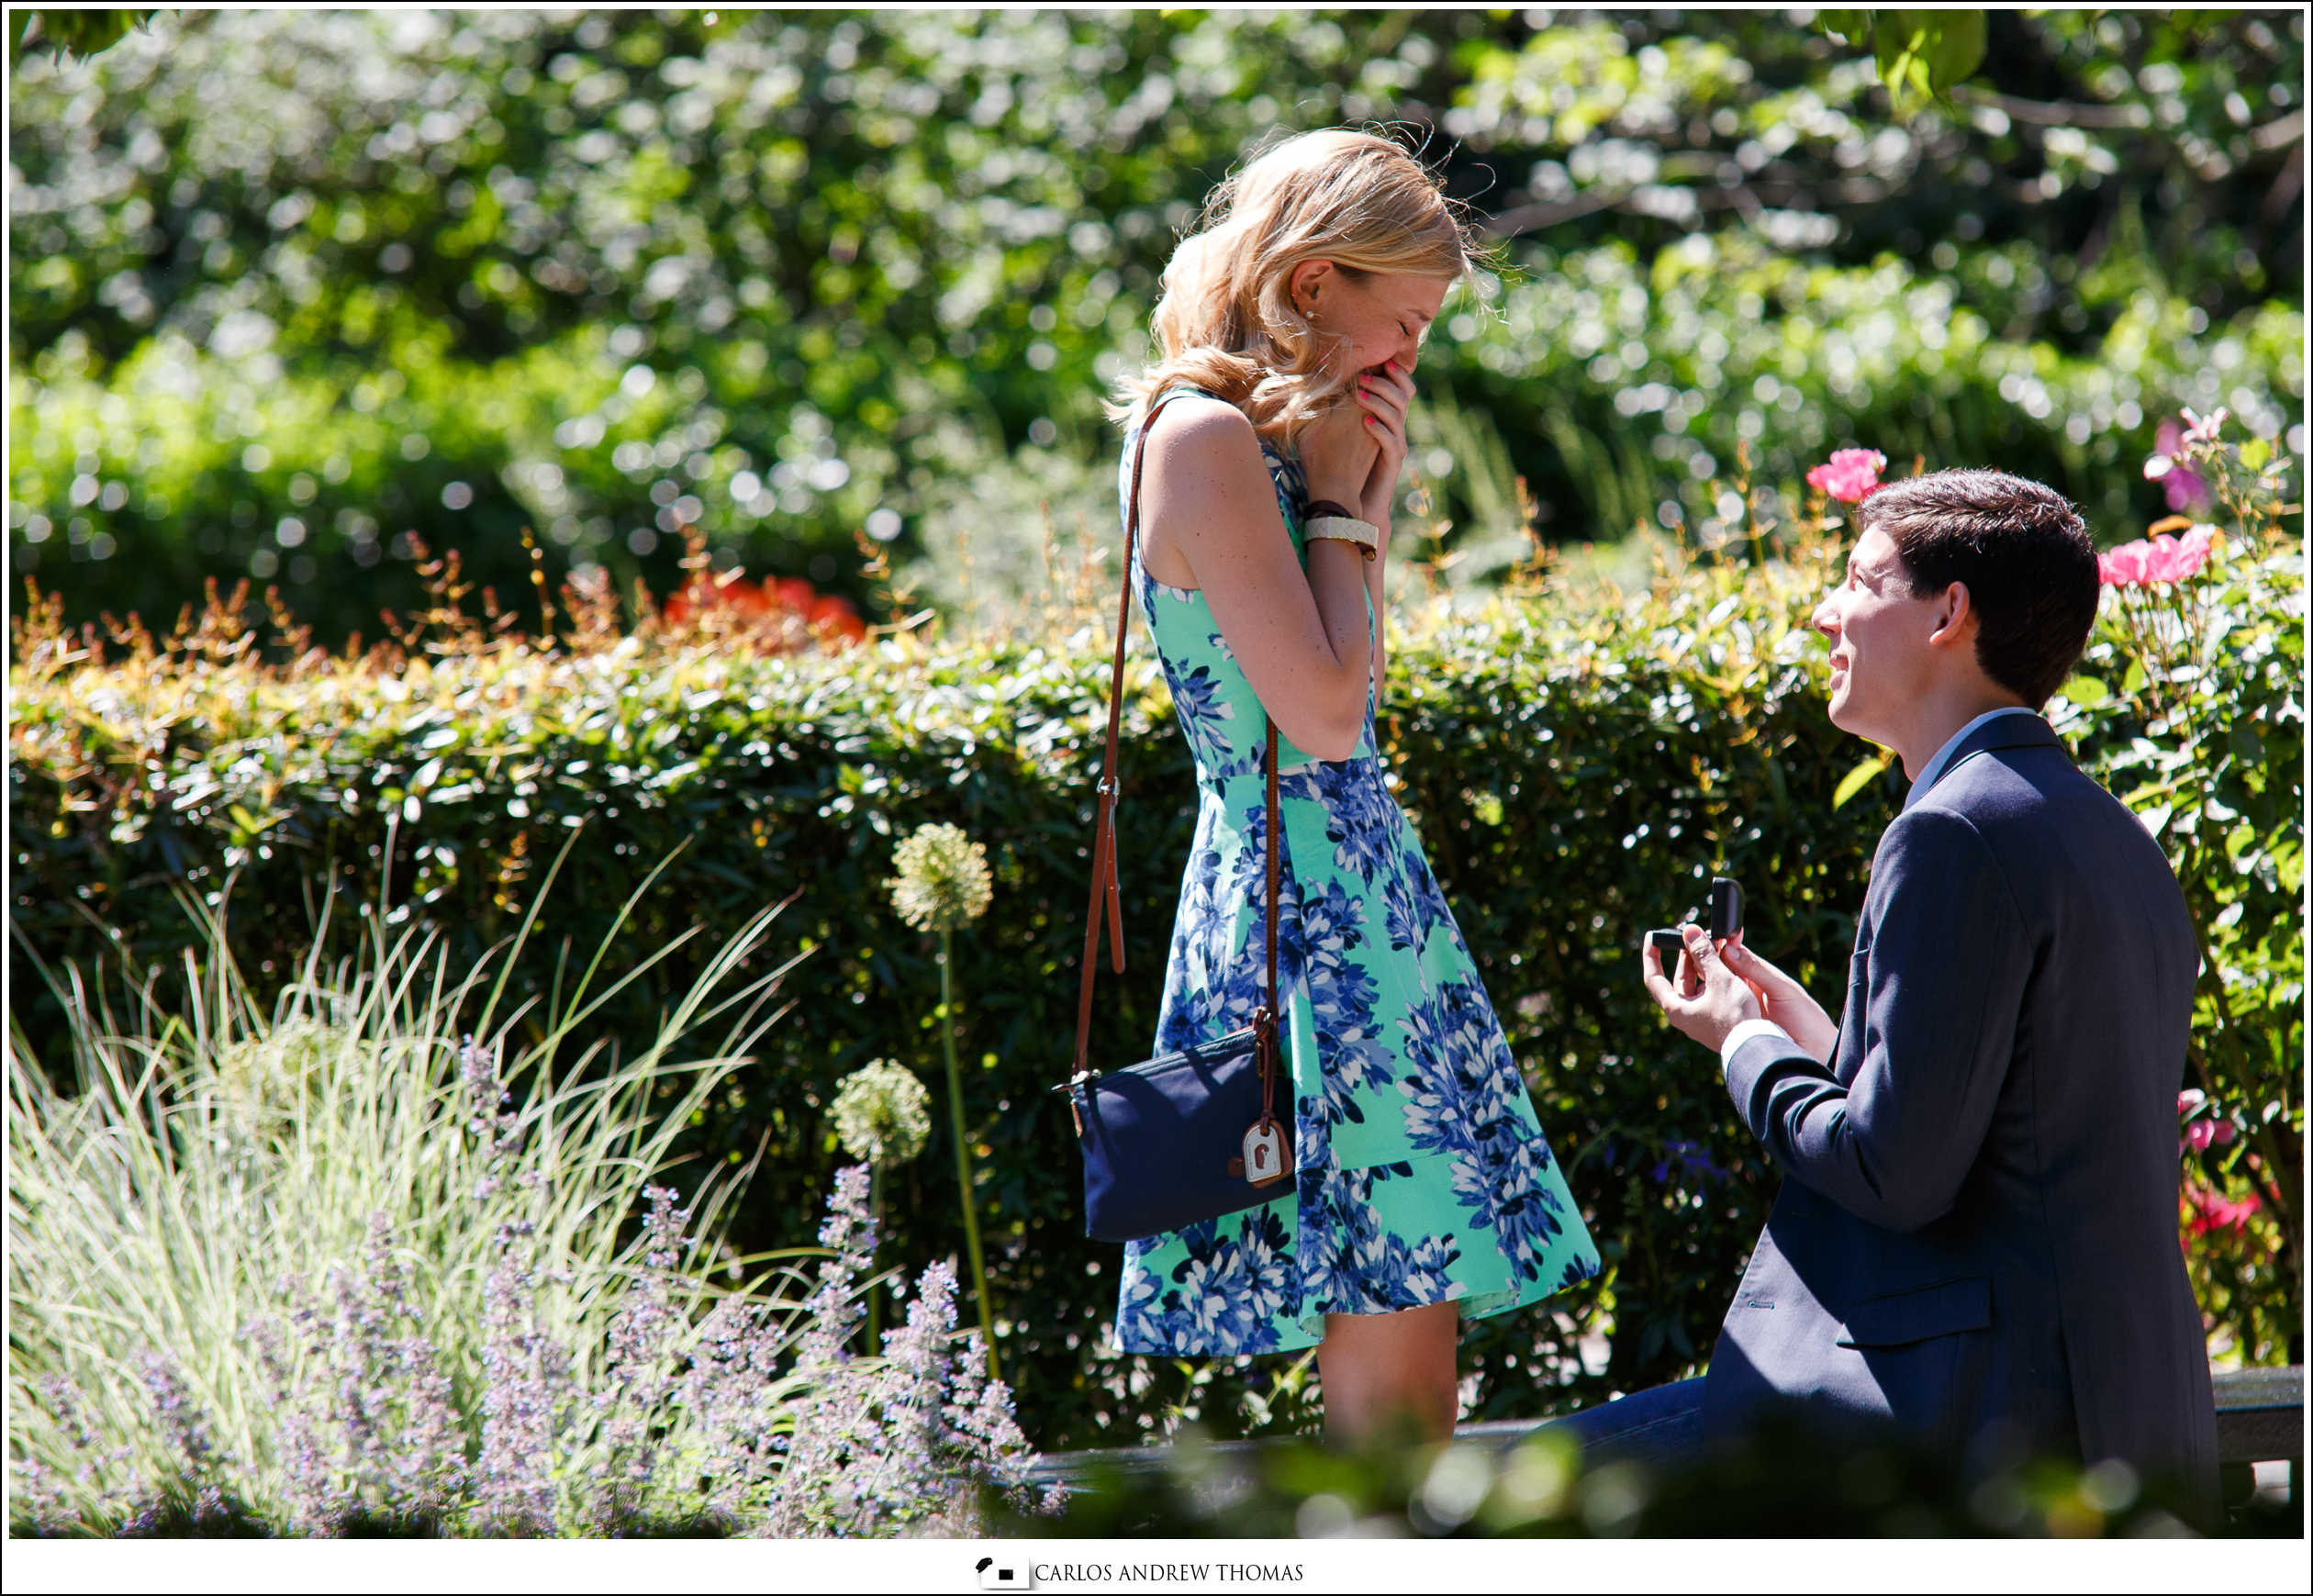 Nick + Shelby | Central Park Proposal and Engagement Session Pho